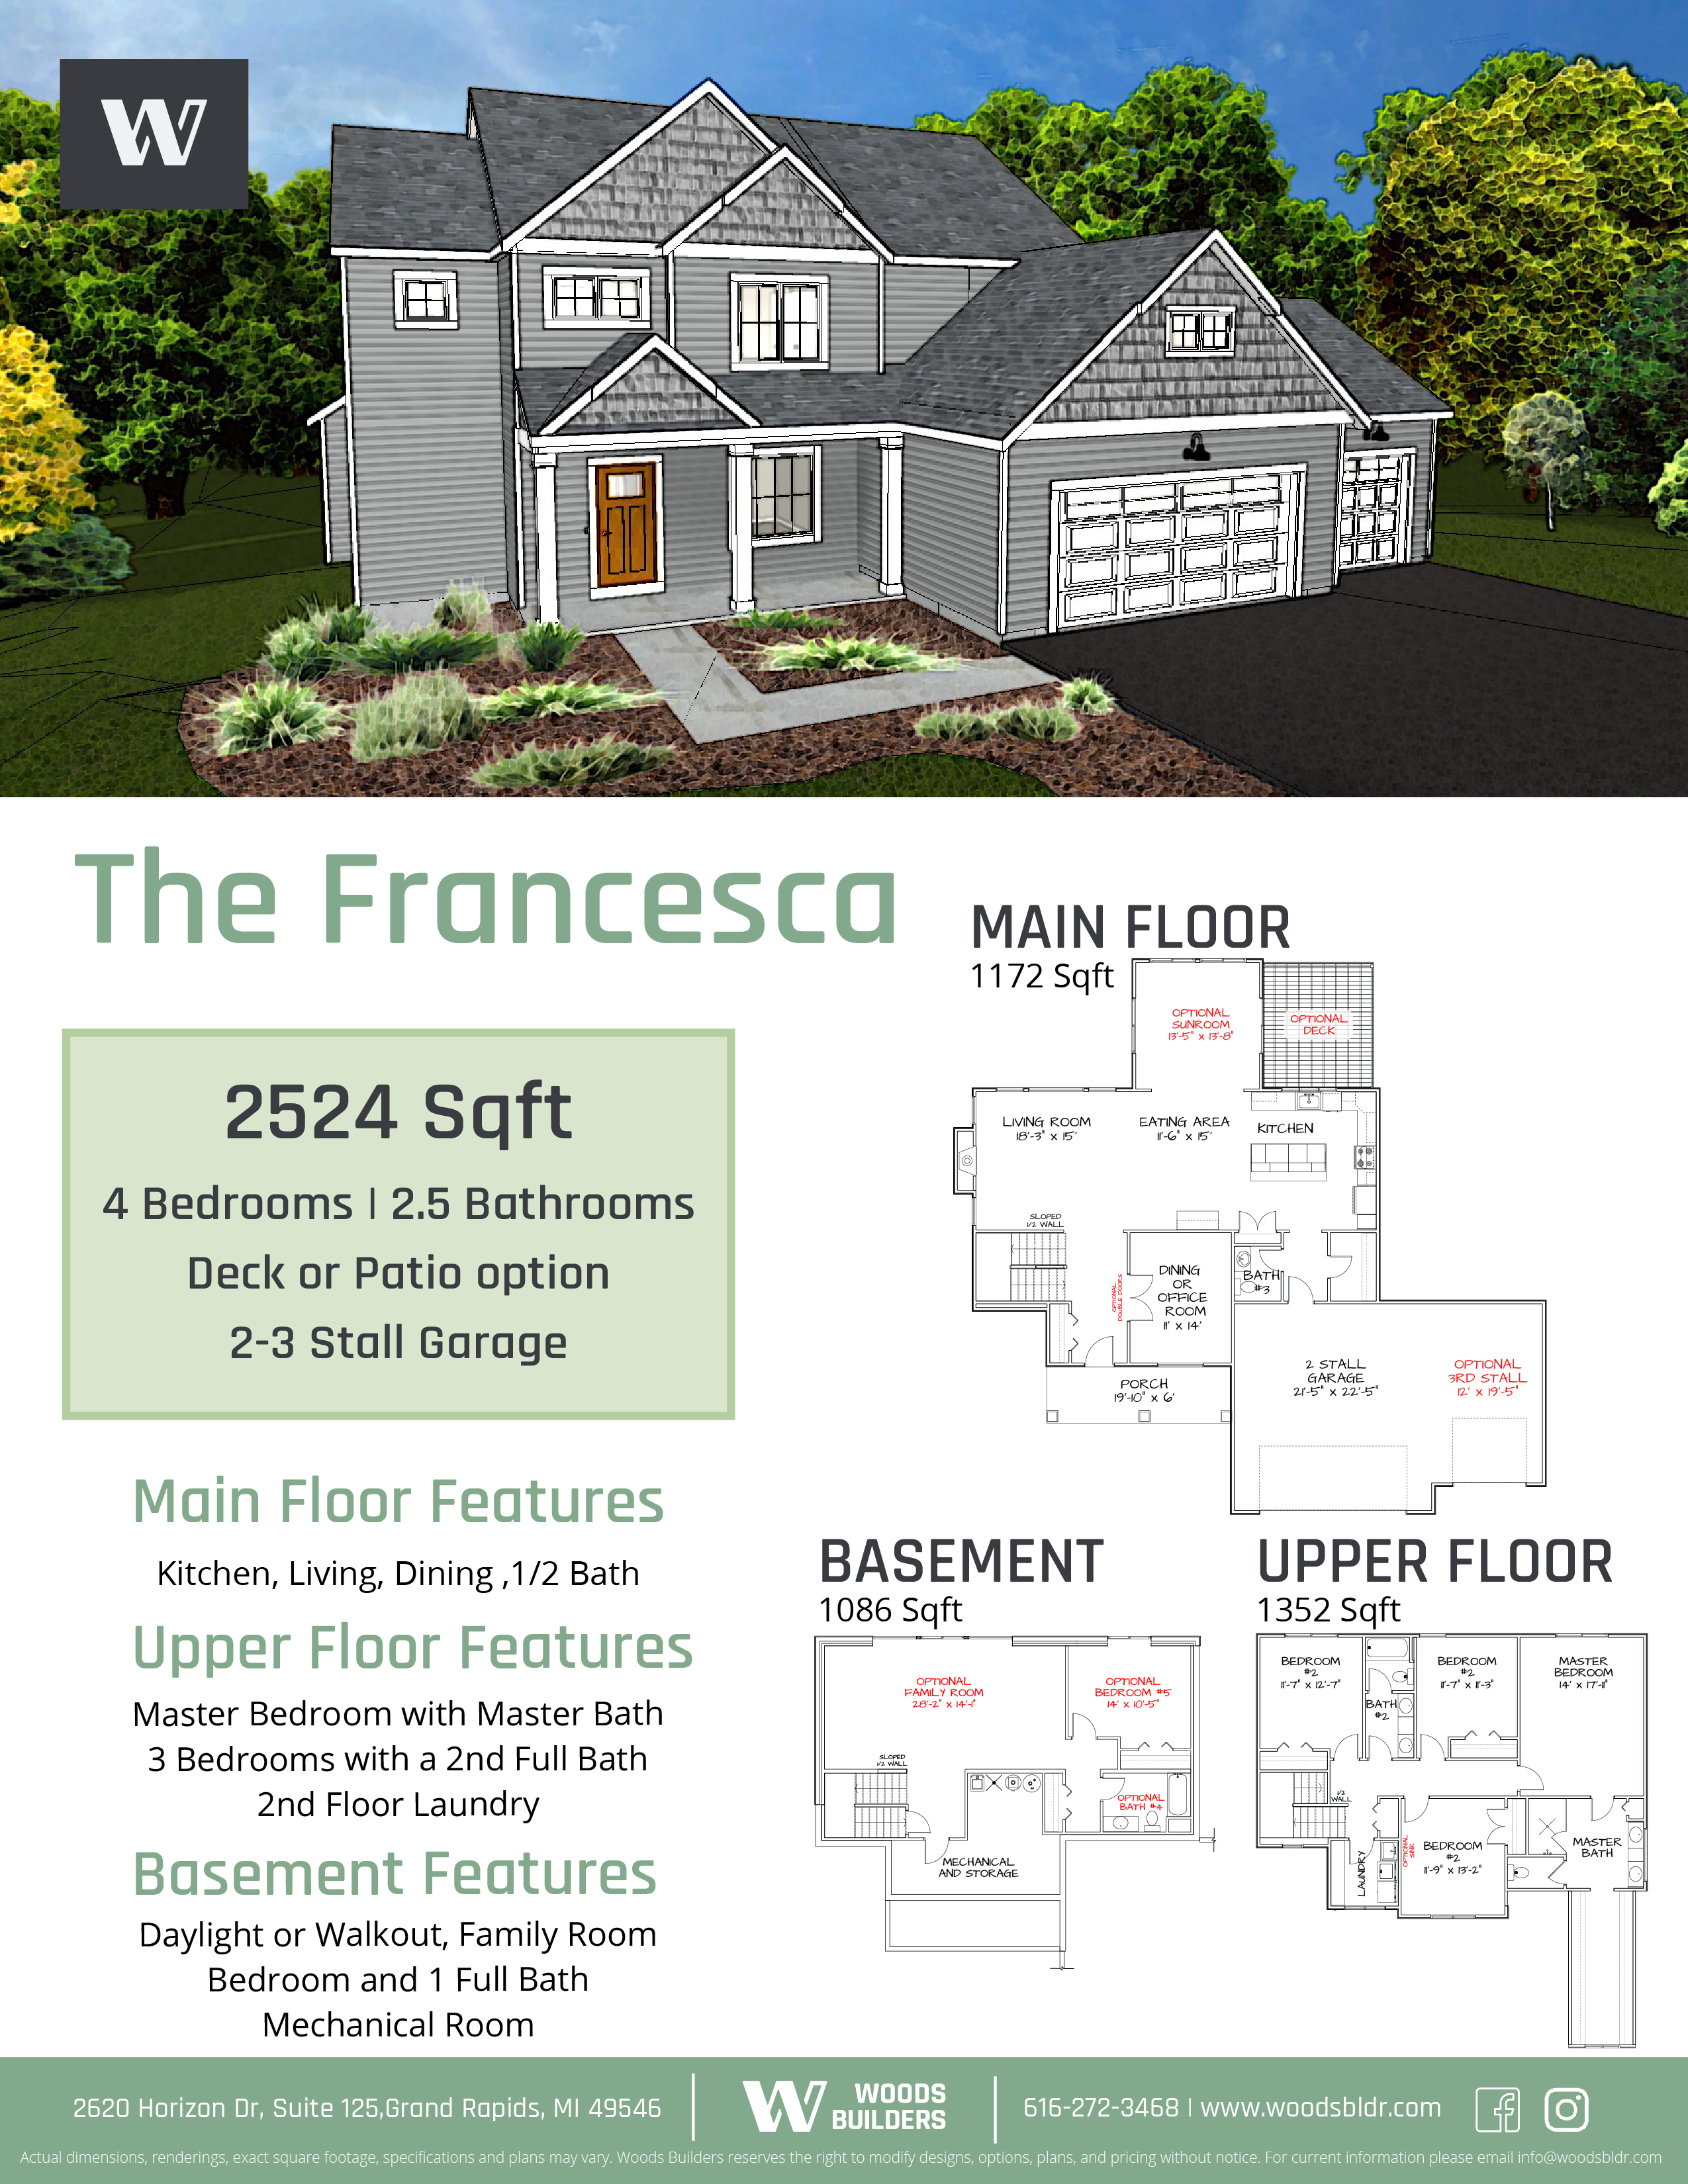 exterior design of francesca house